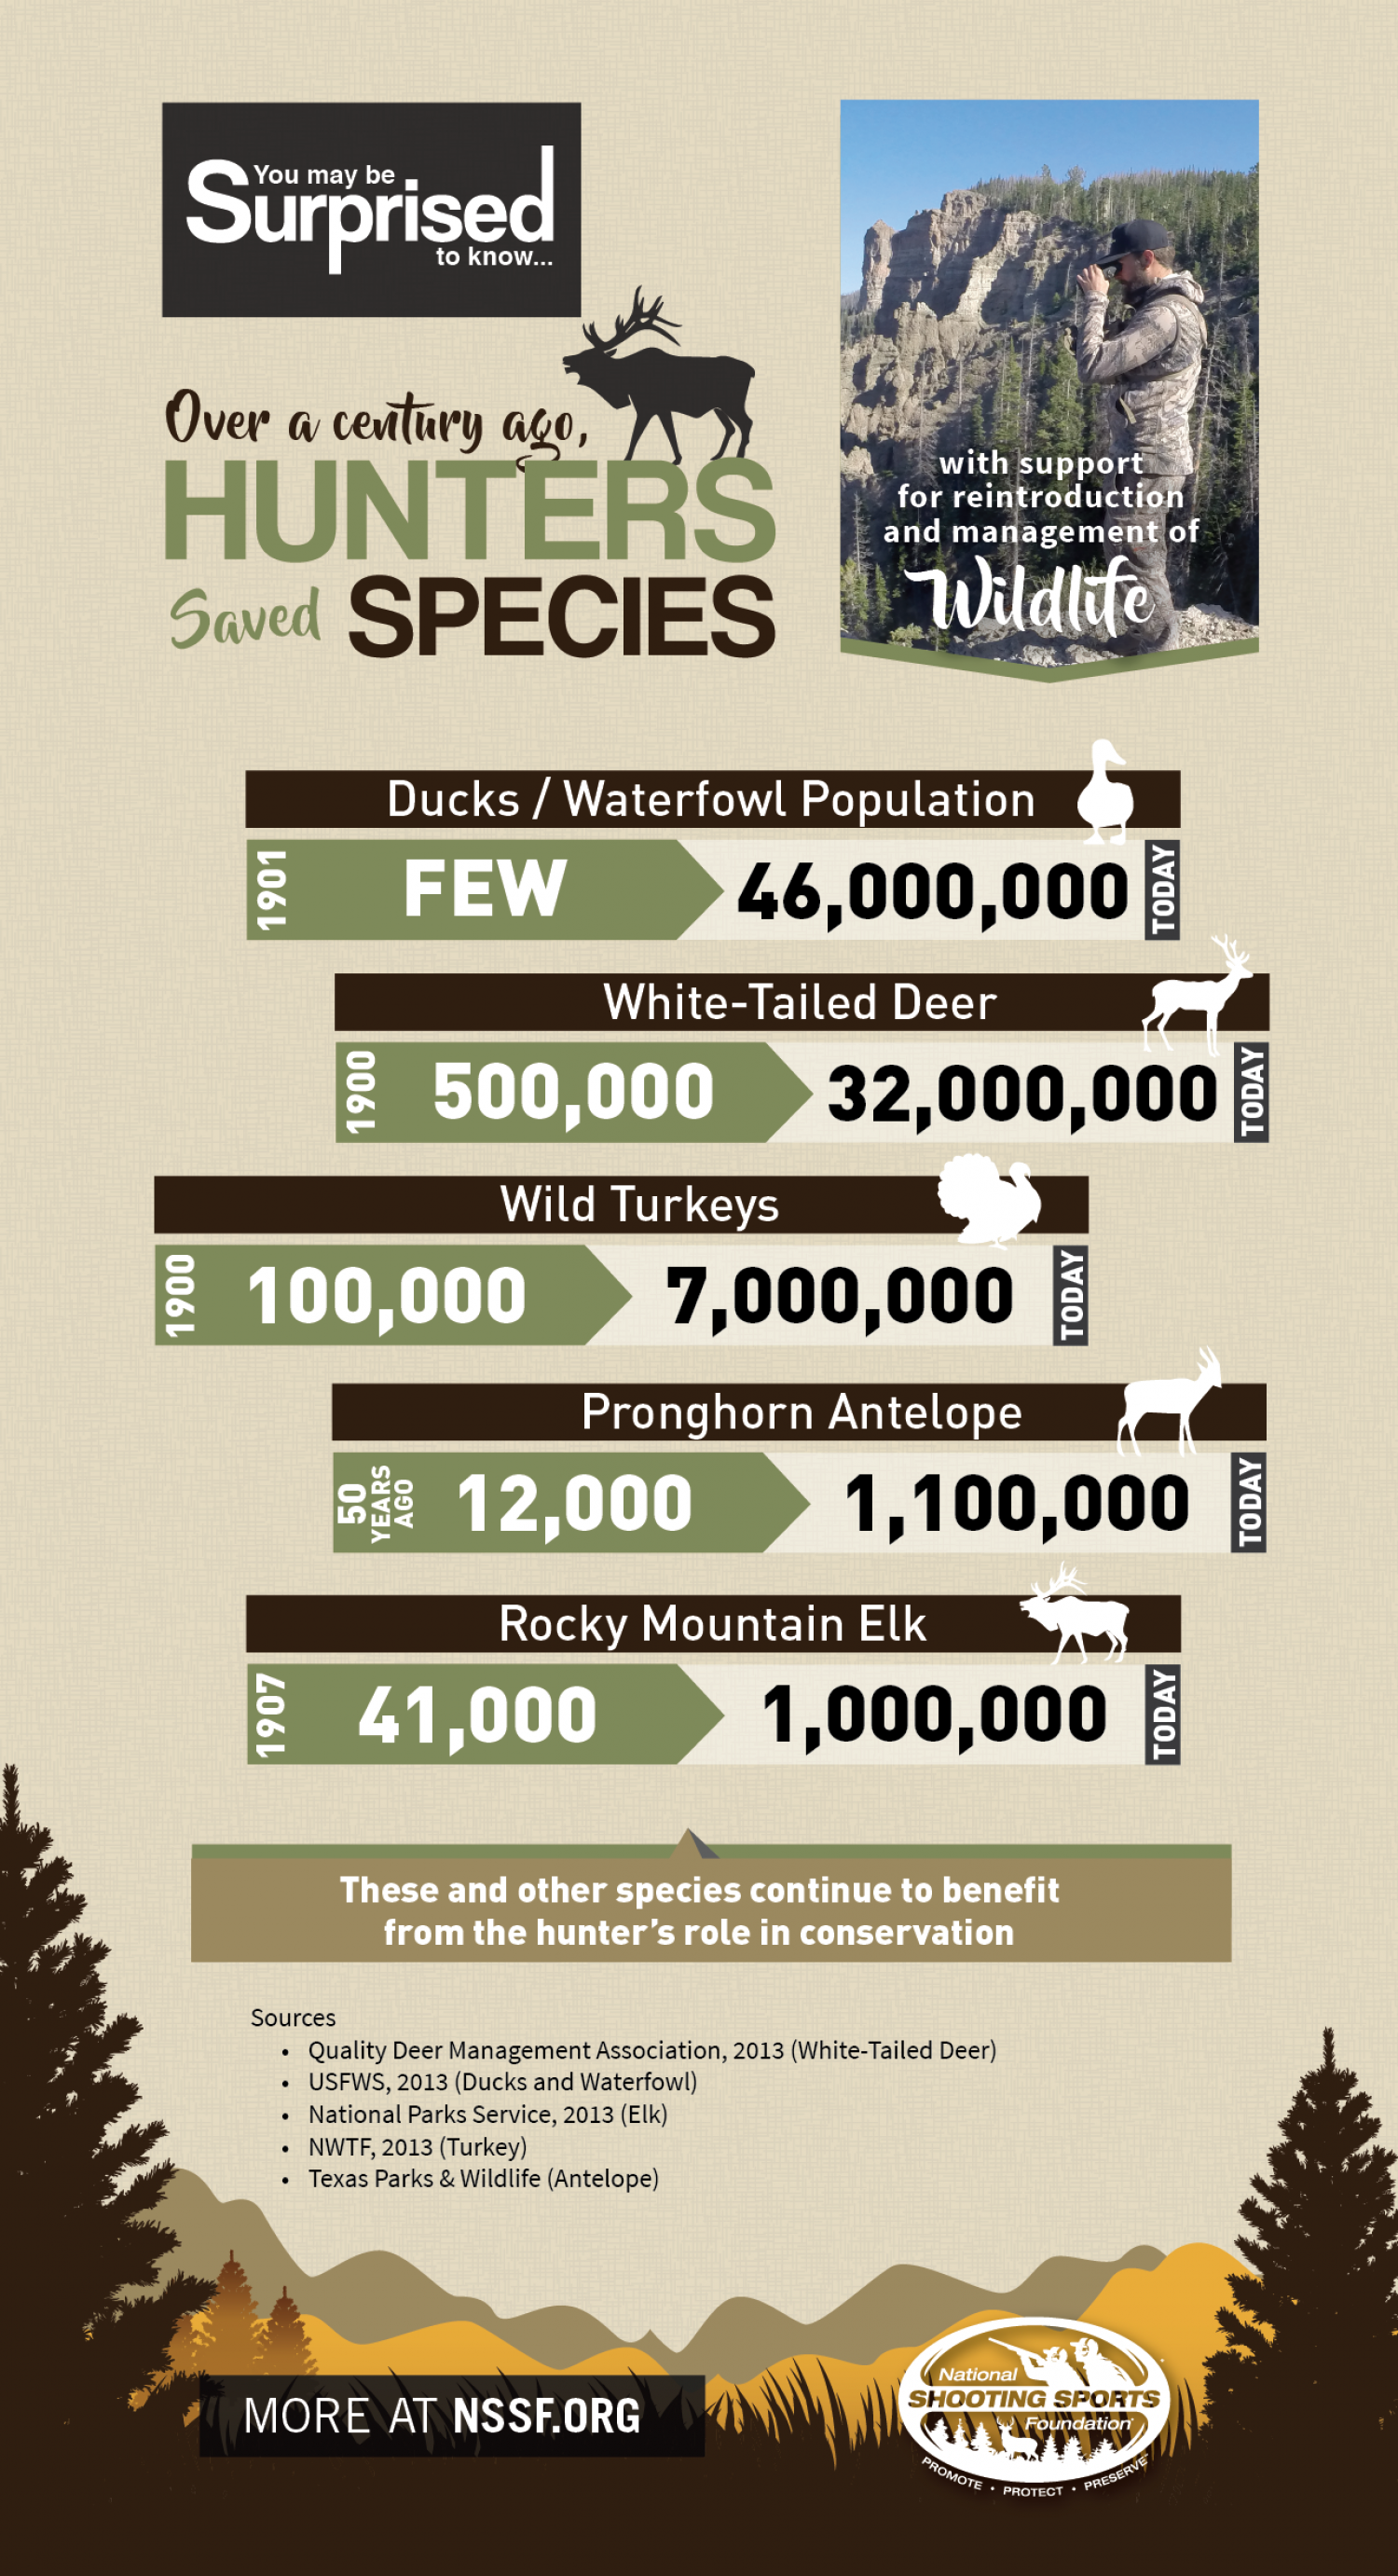 Hunters Saved Species